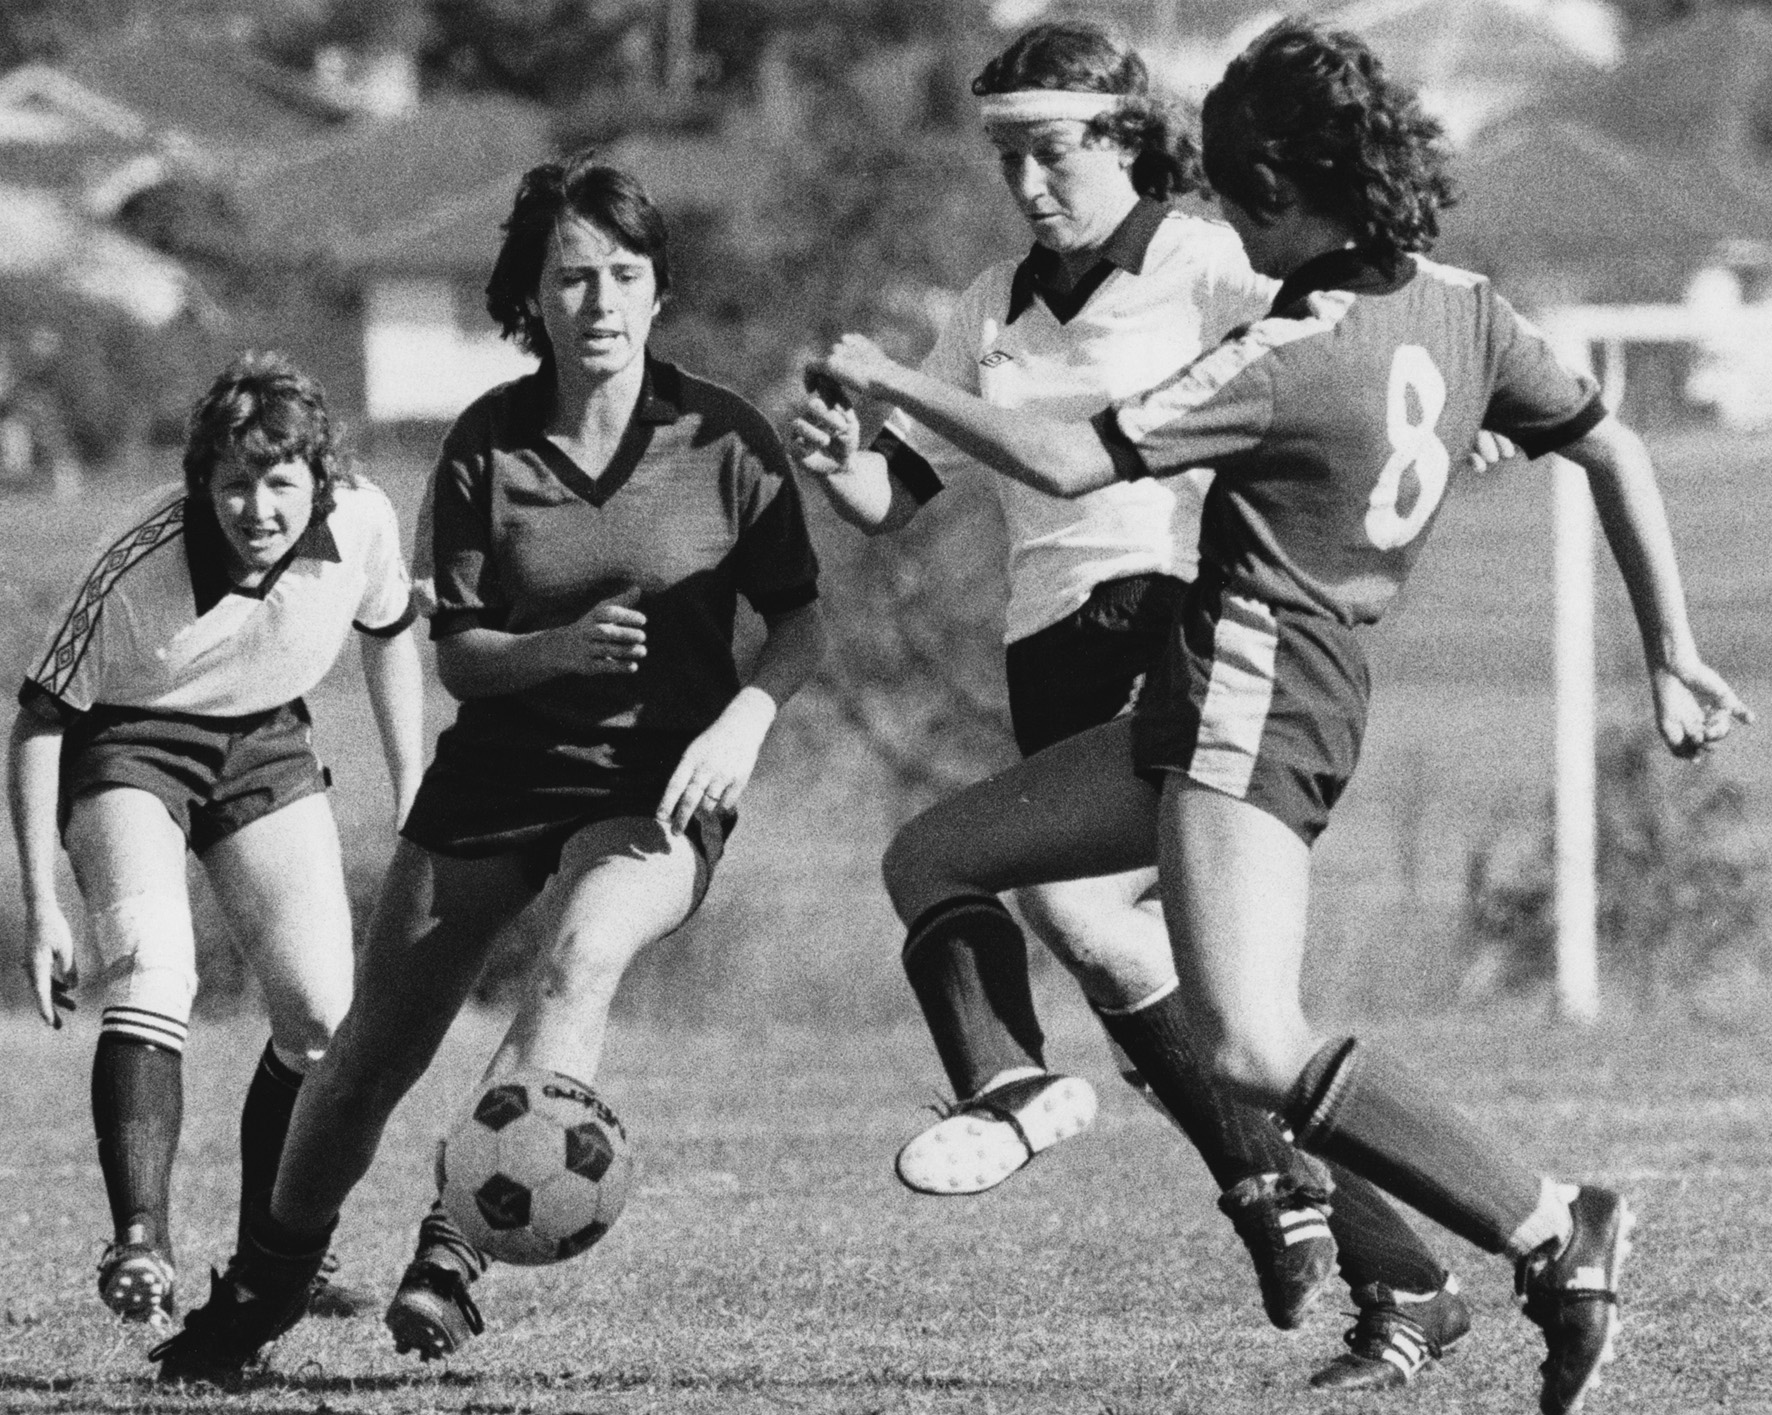 Sue Monteath, Kerri Millman, Connie Byrne (L-R) playing for The Matildas in the 1980s. Photo: Football Queensland.